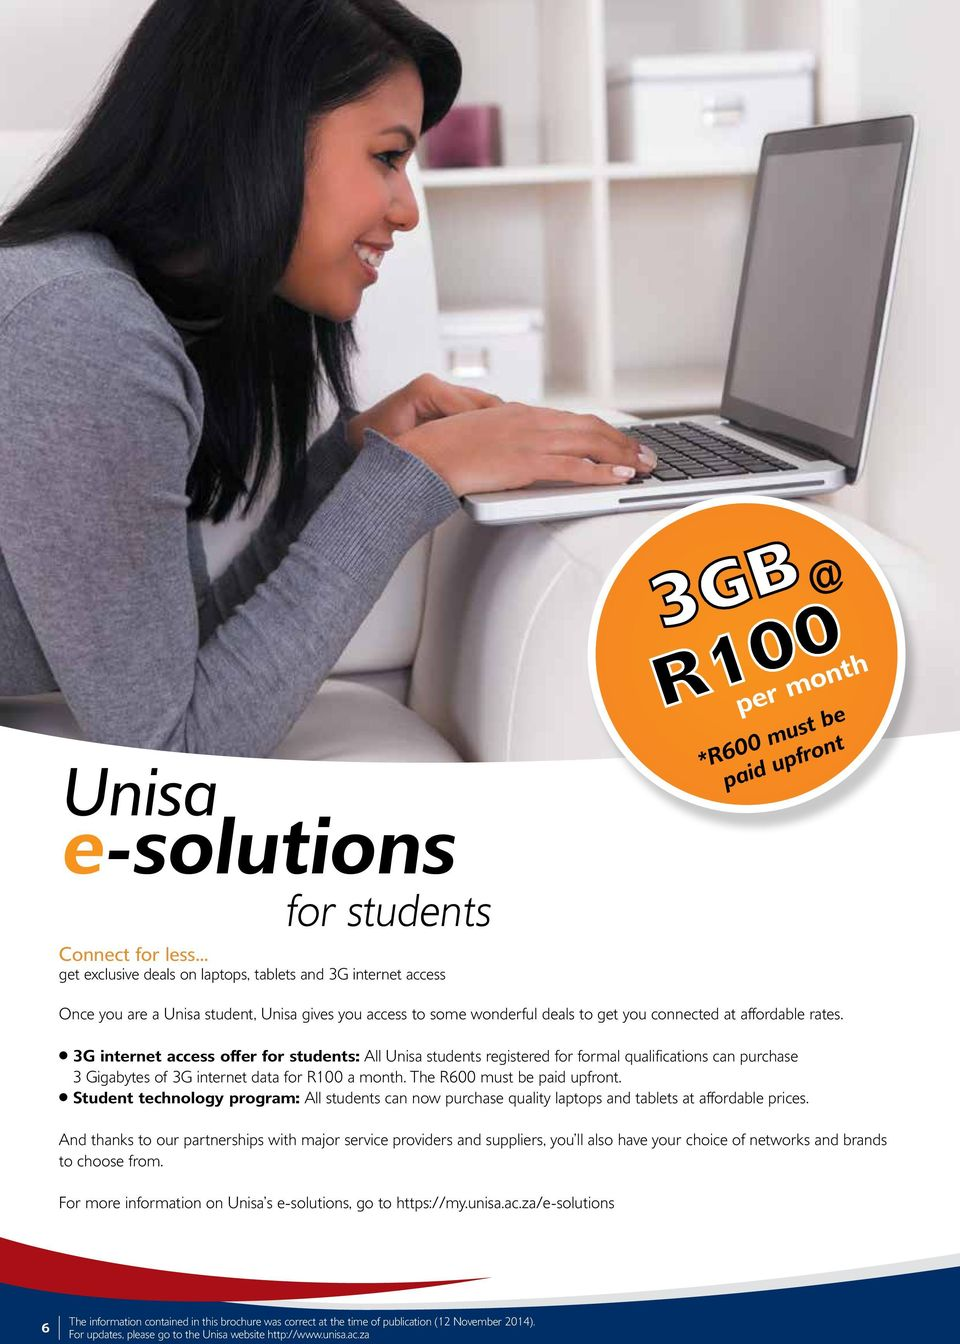 3G internet access offer for students: All Unisa students registered for formal qualifications can purchase 3 Gigabytes of 3G internet data for R100 a month. The R600 must be paid upfront.